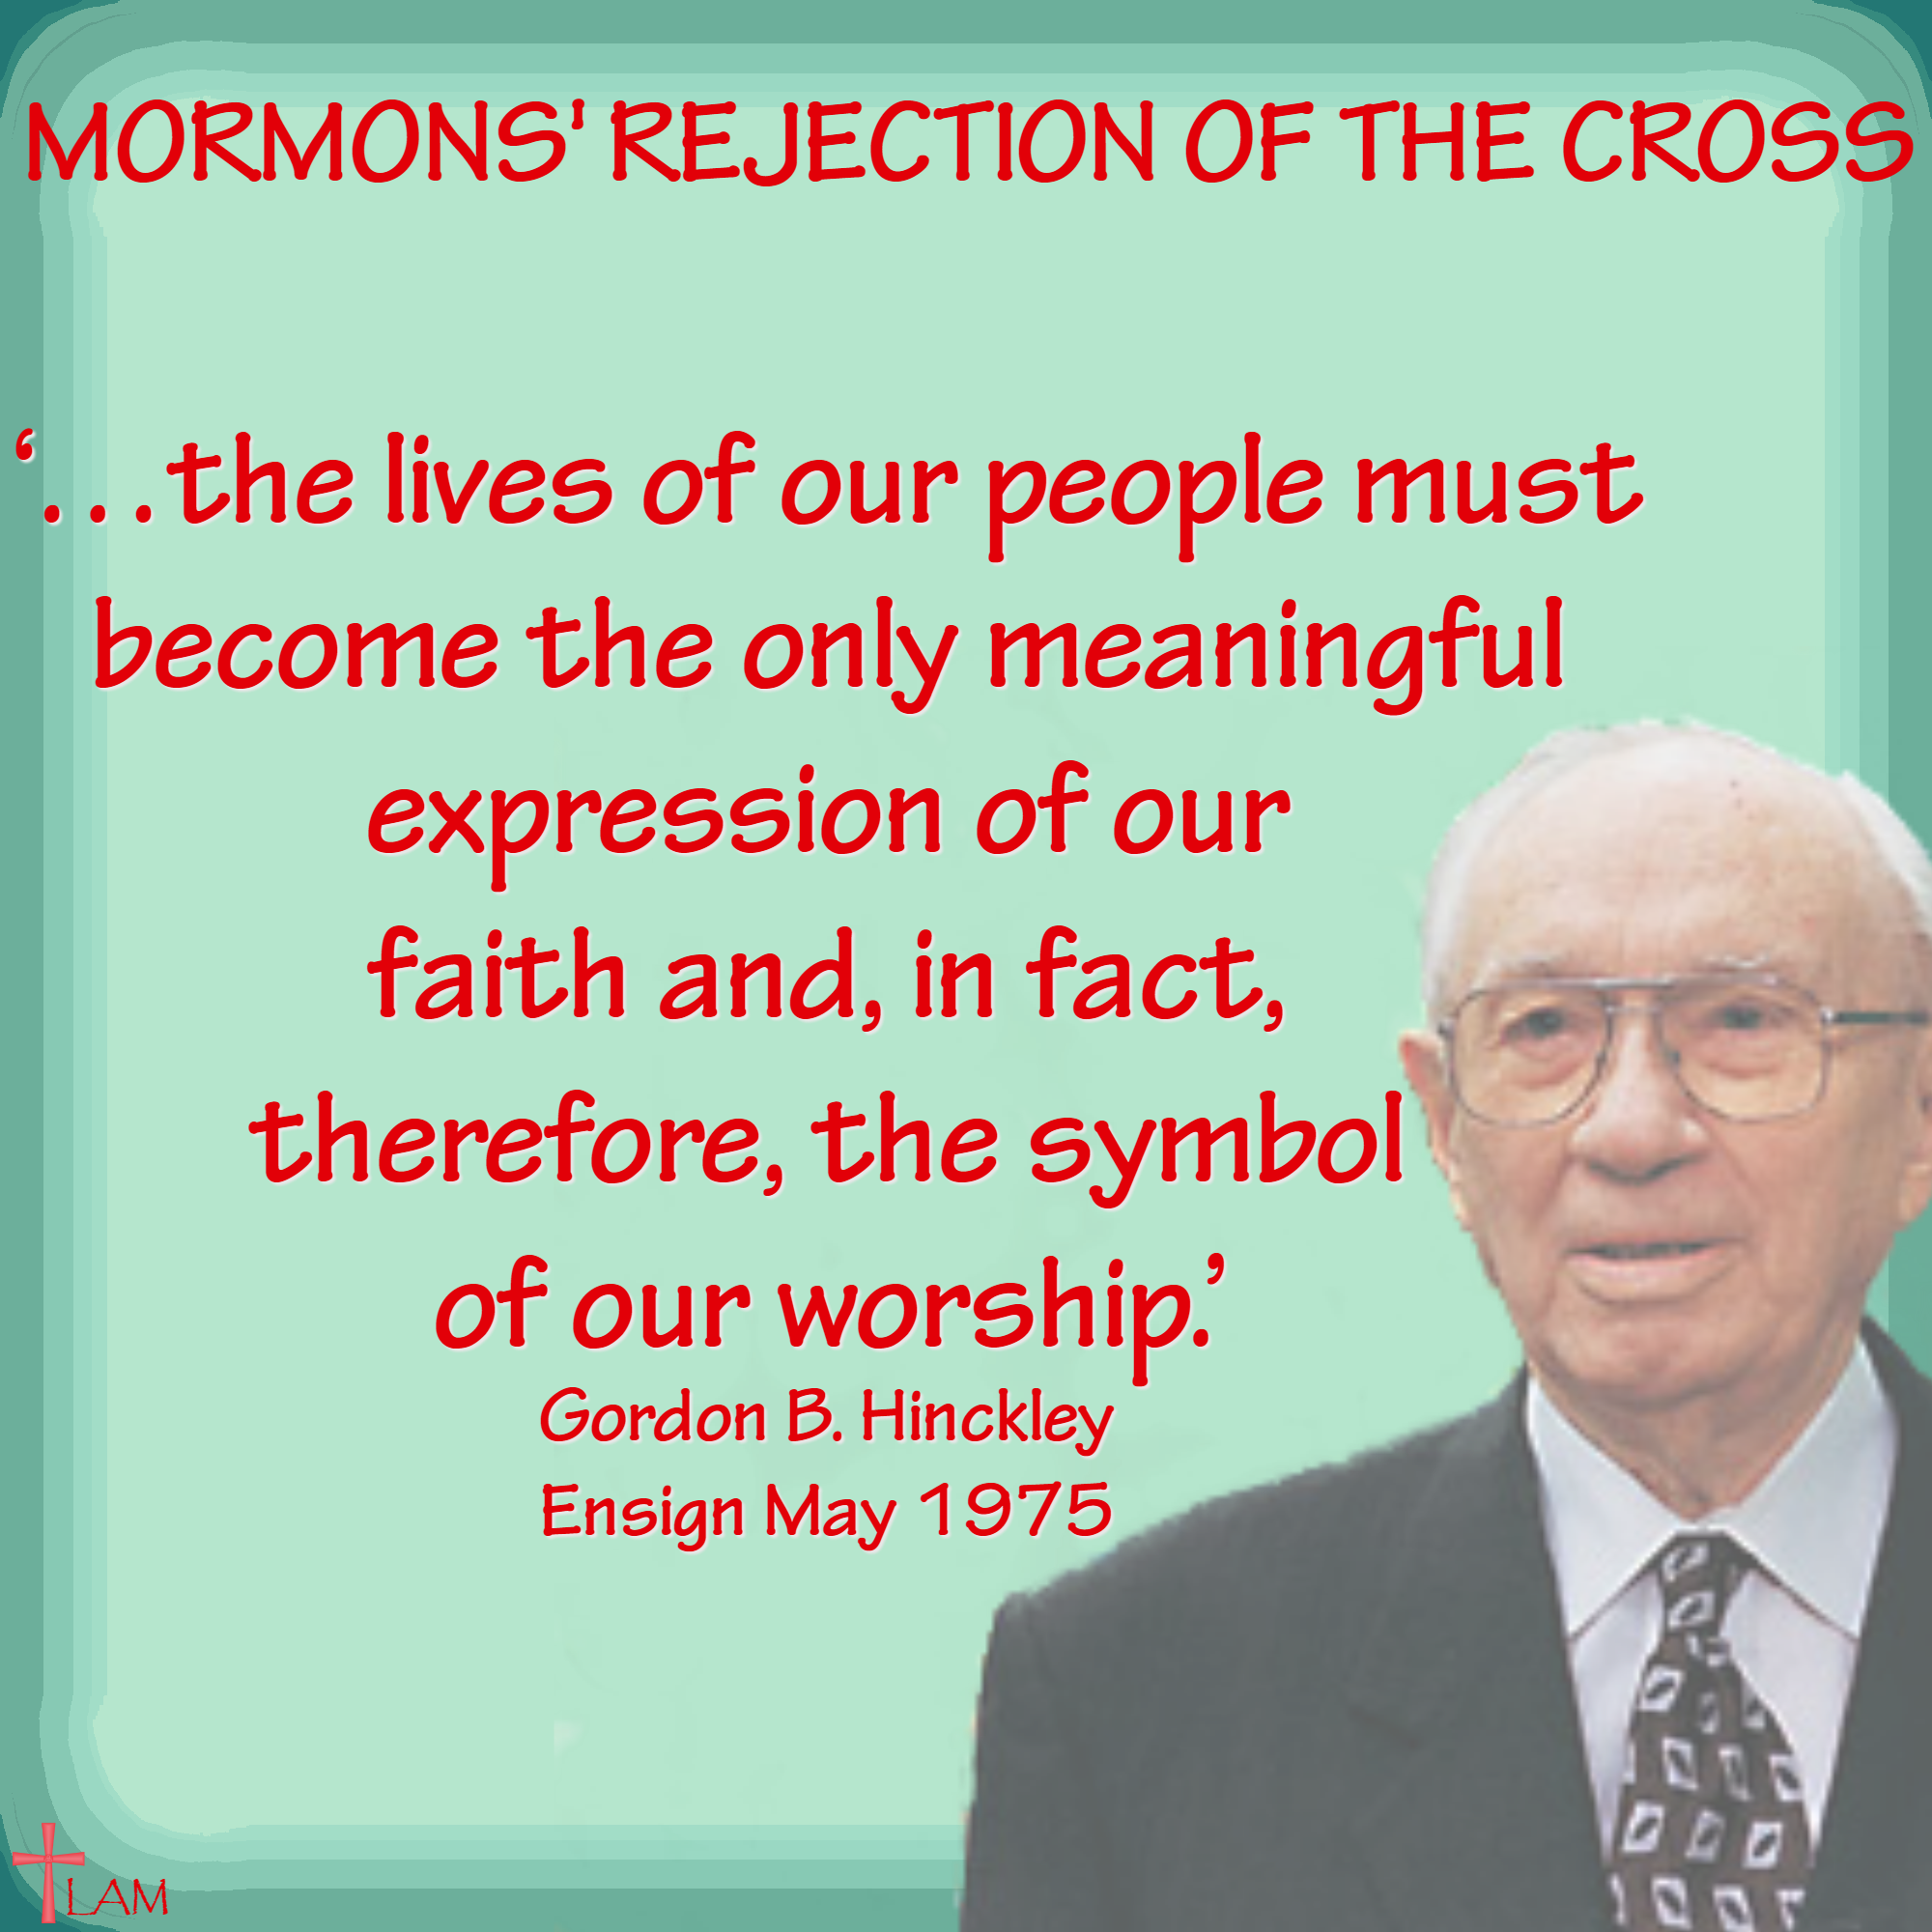 Gordon B Hinckley Png - The Mormons' Rejection of the Cross - Life After Ministries